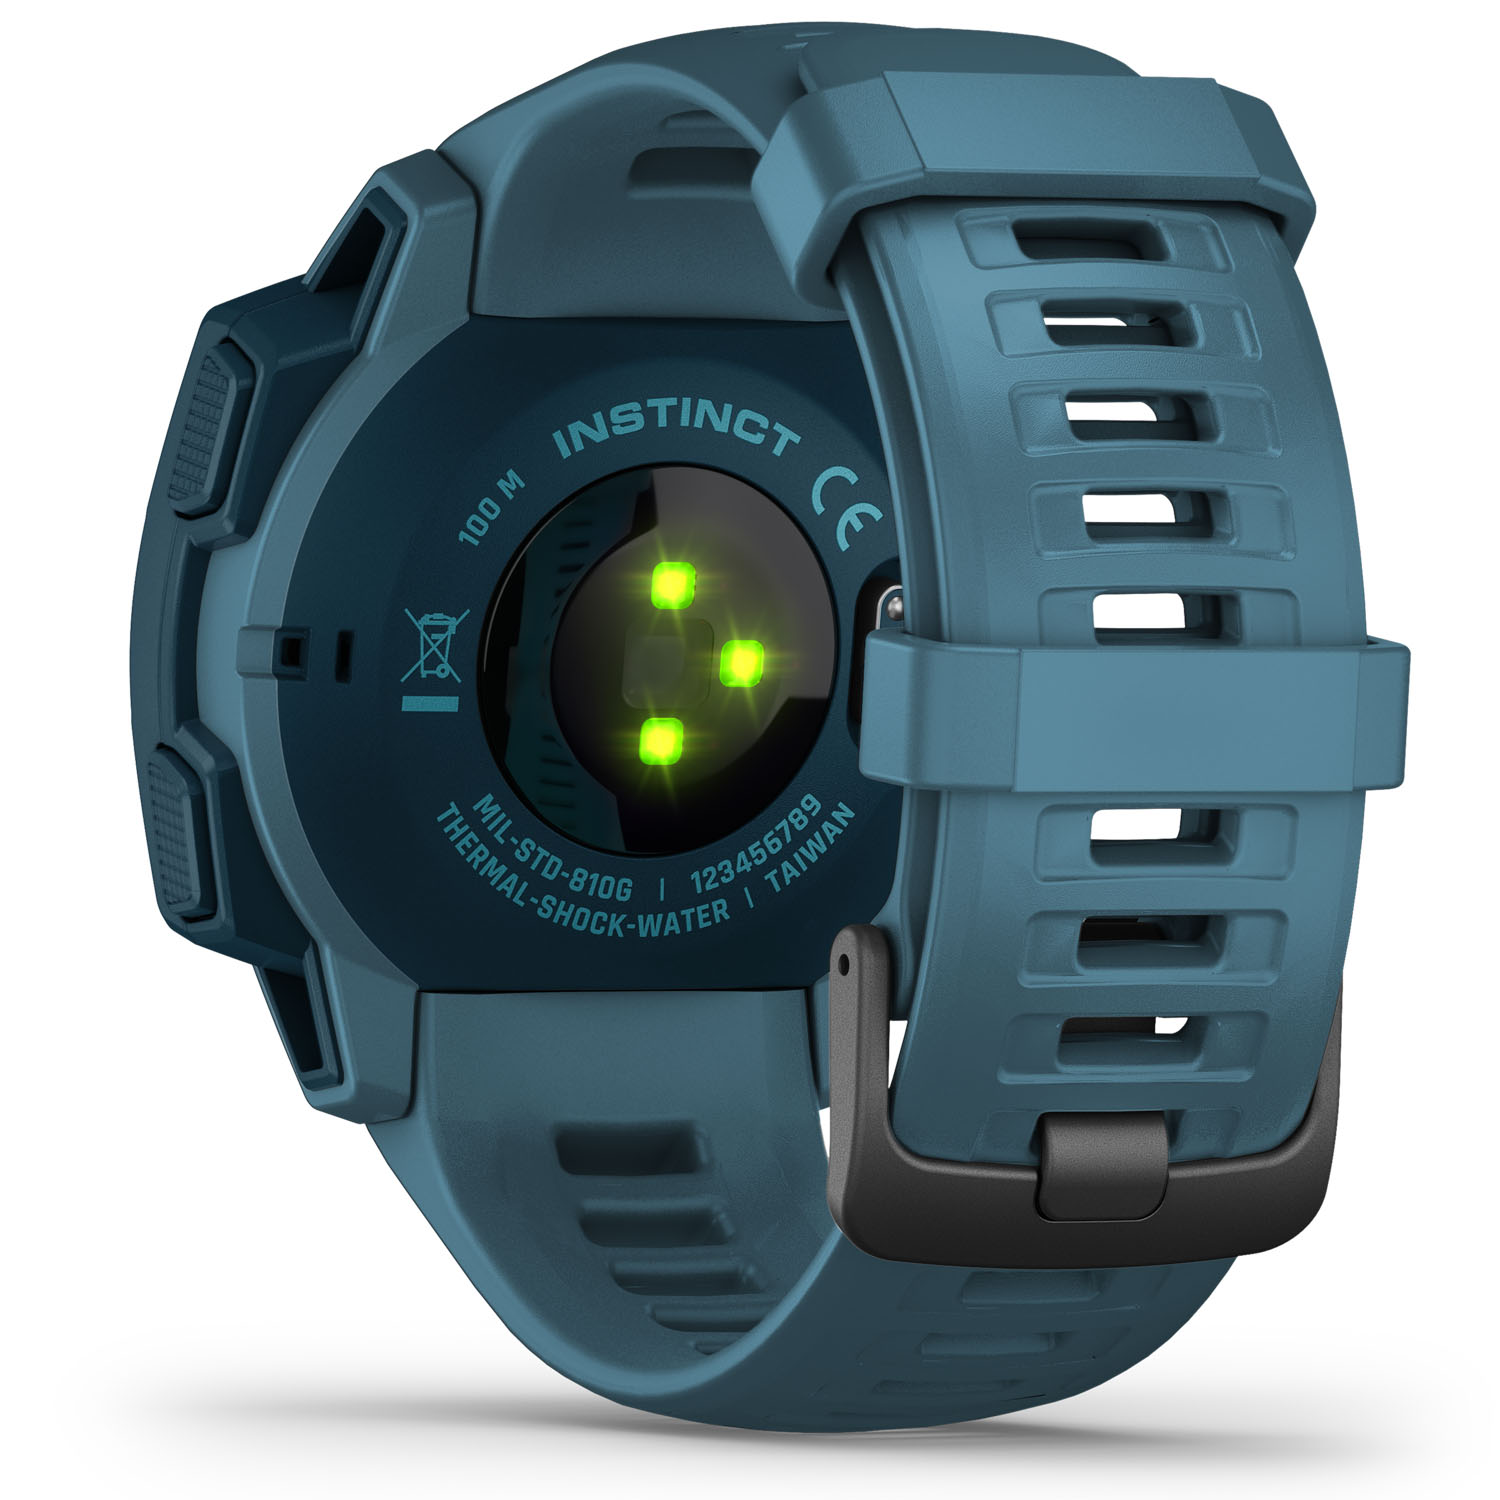 Excellent Reasons To Use Gps Navigation Keeping Track Of Apps Garmin-22863-Garmin-Instinct-GPS-Watch-Lakeside-Blue-010-02064-04-Back